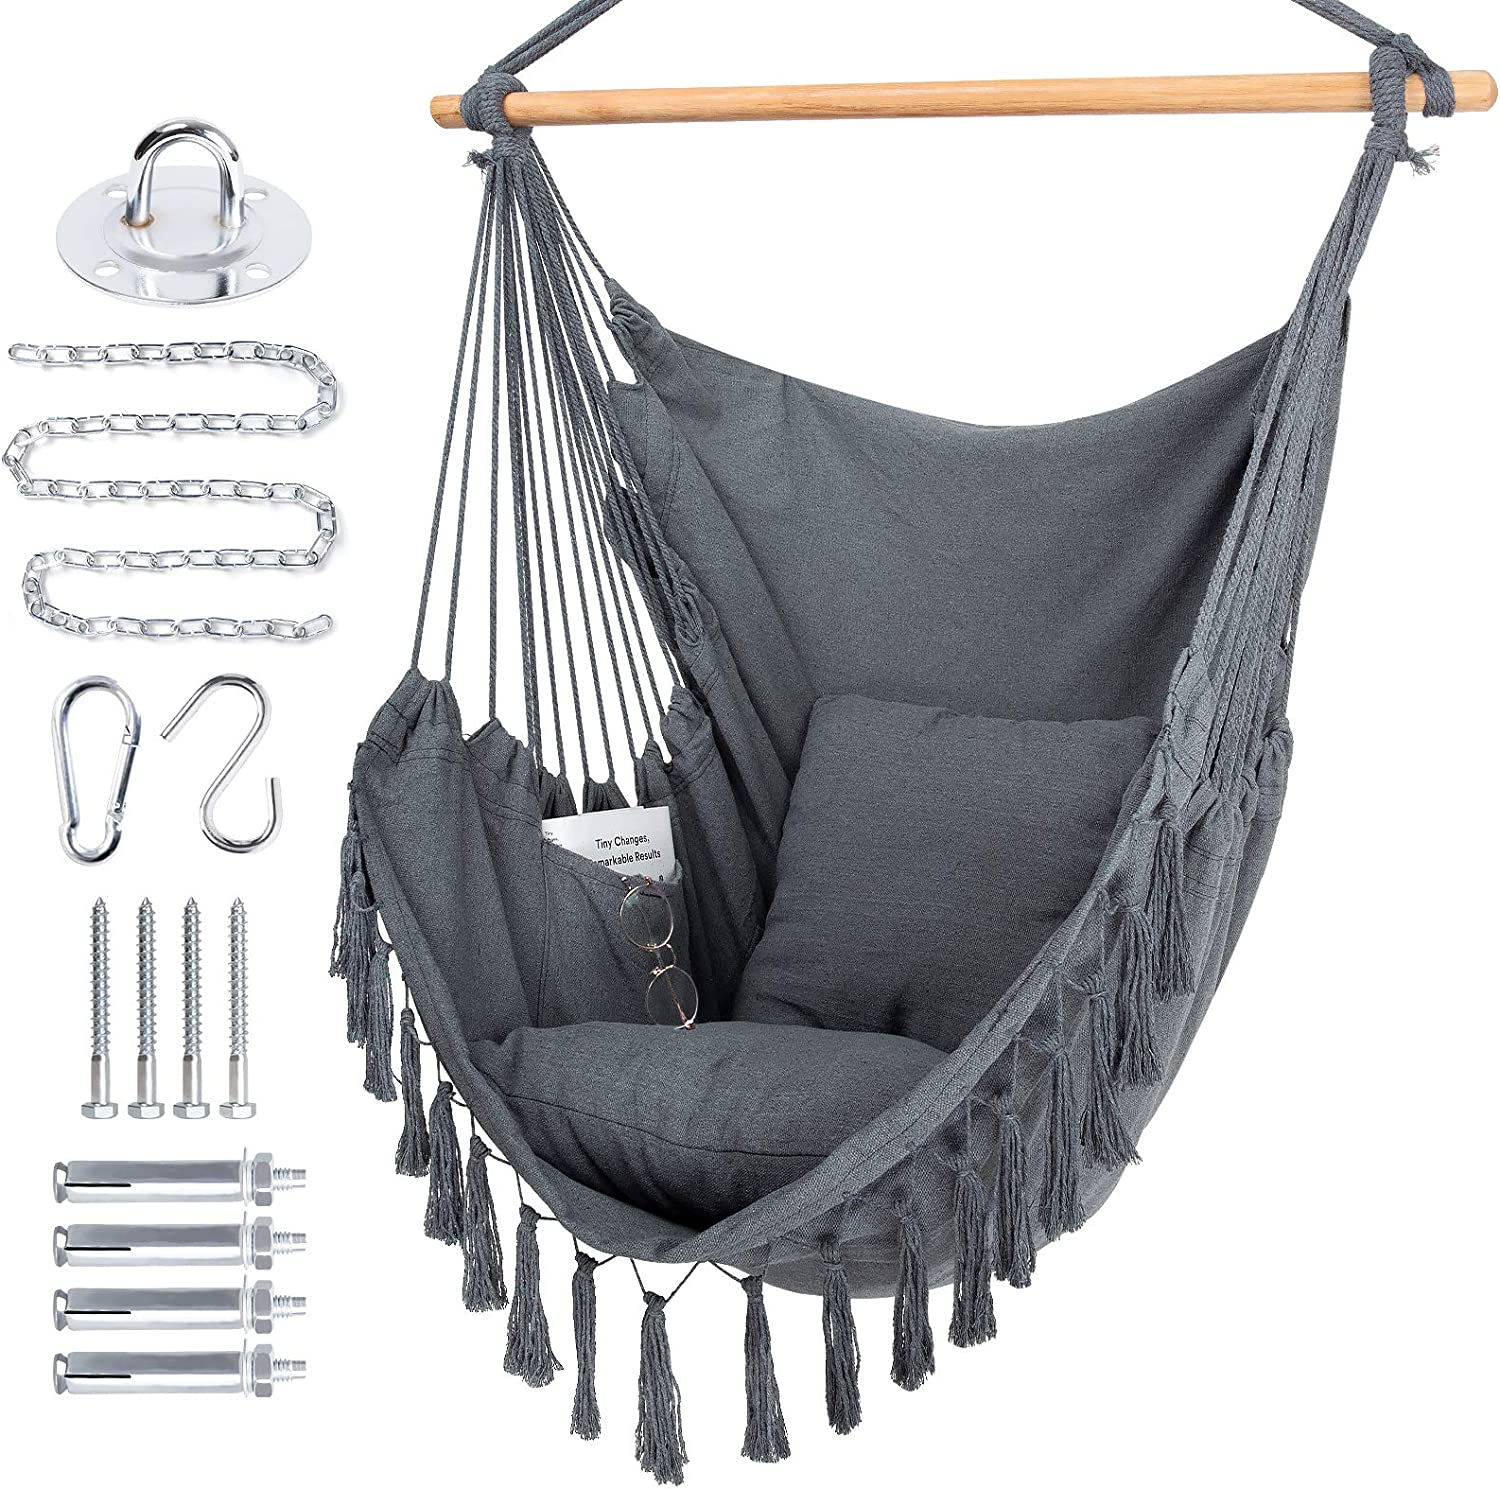 WBHome safety Extra Large Ranking TOP20 Hammock Chair Swing with Hardware Kit Hangin